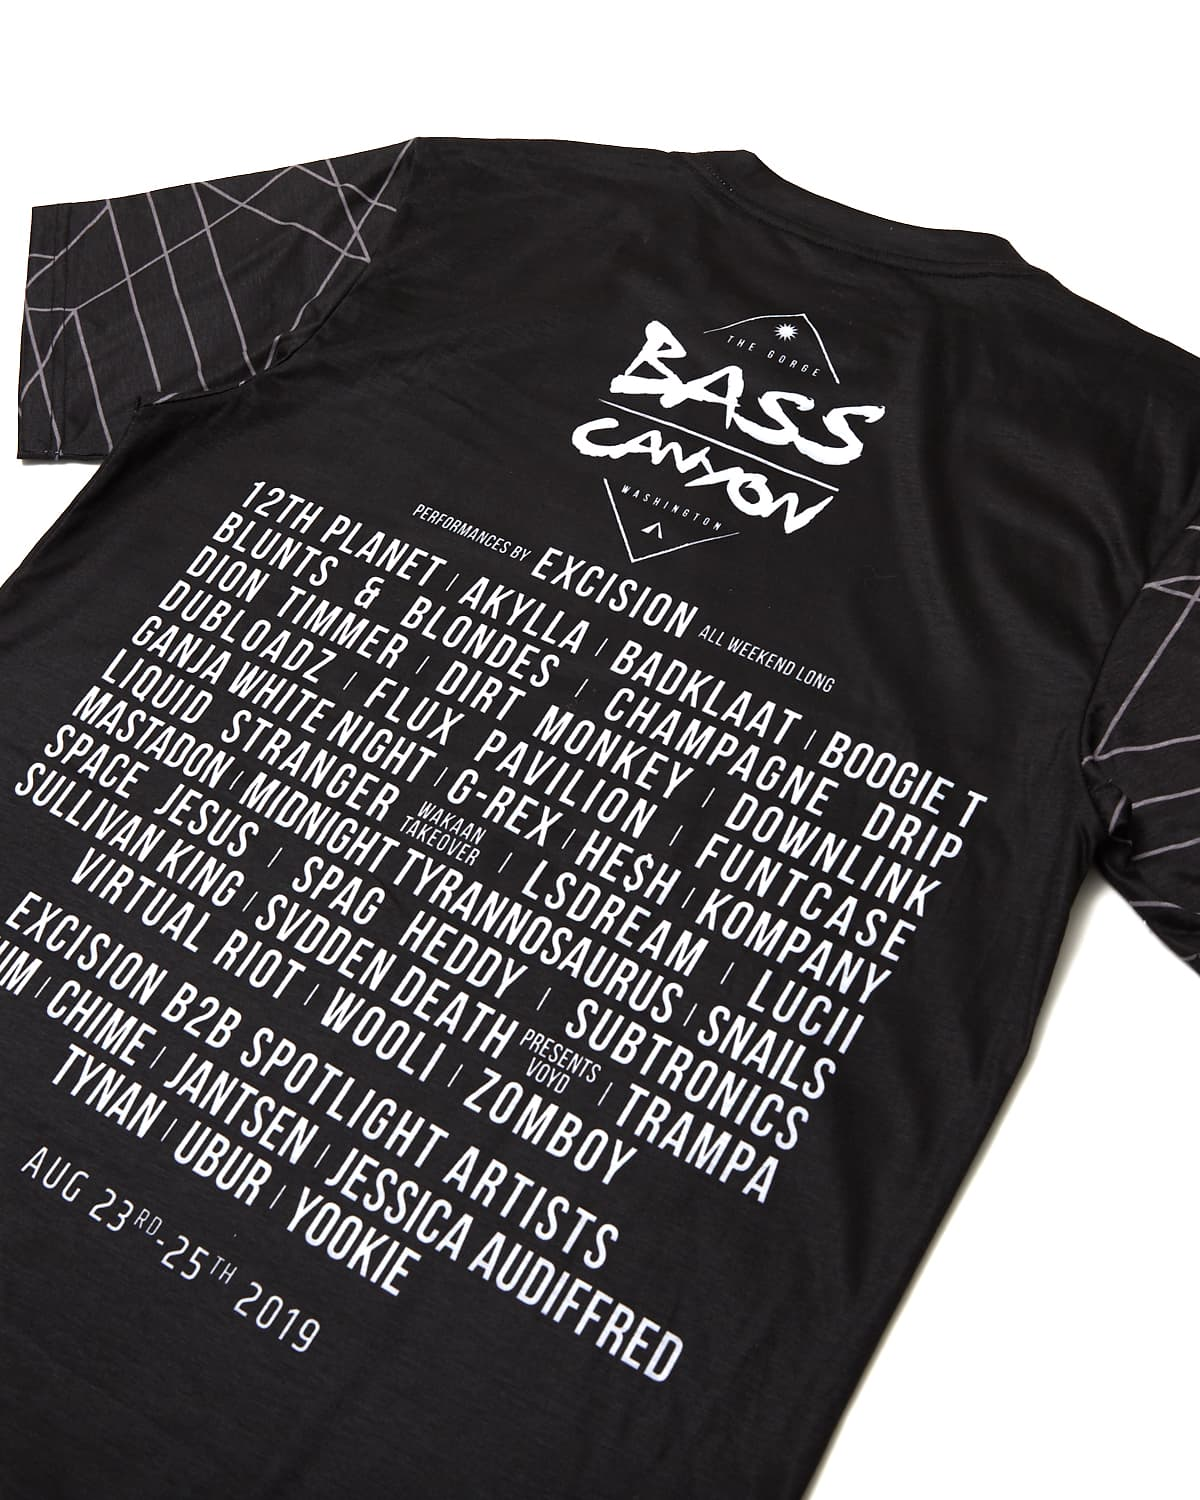 Official Bass Canyon 2019 Line Up Tee